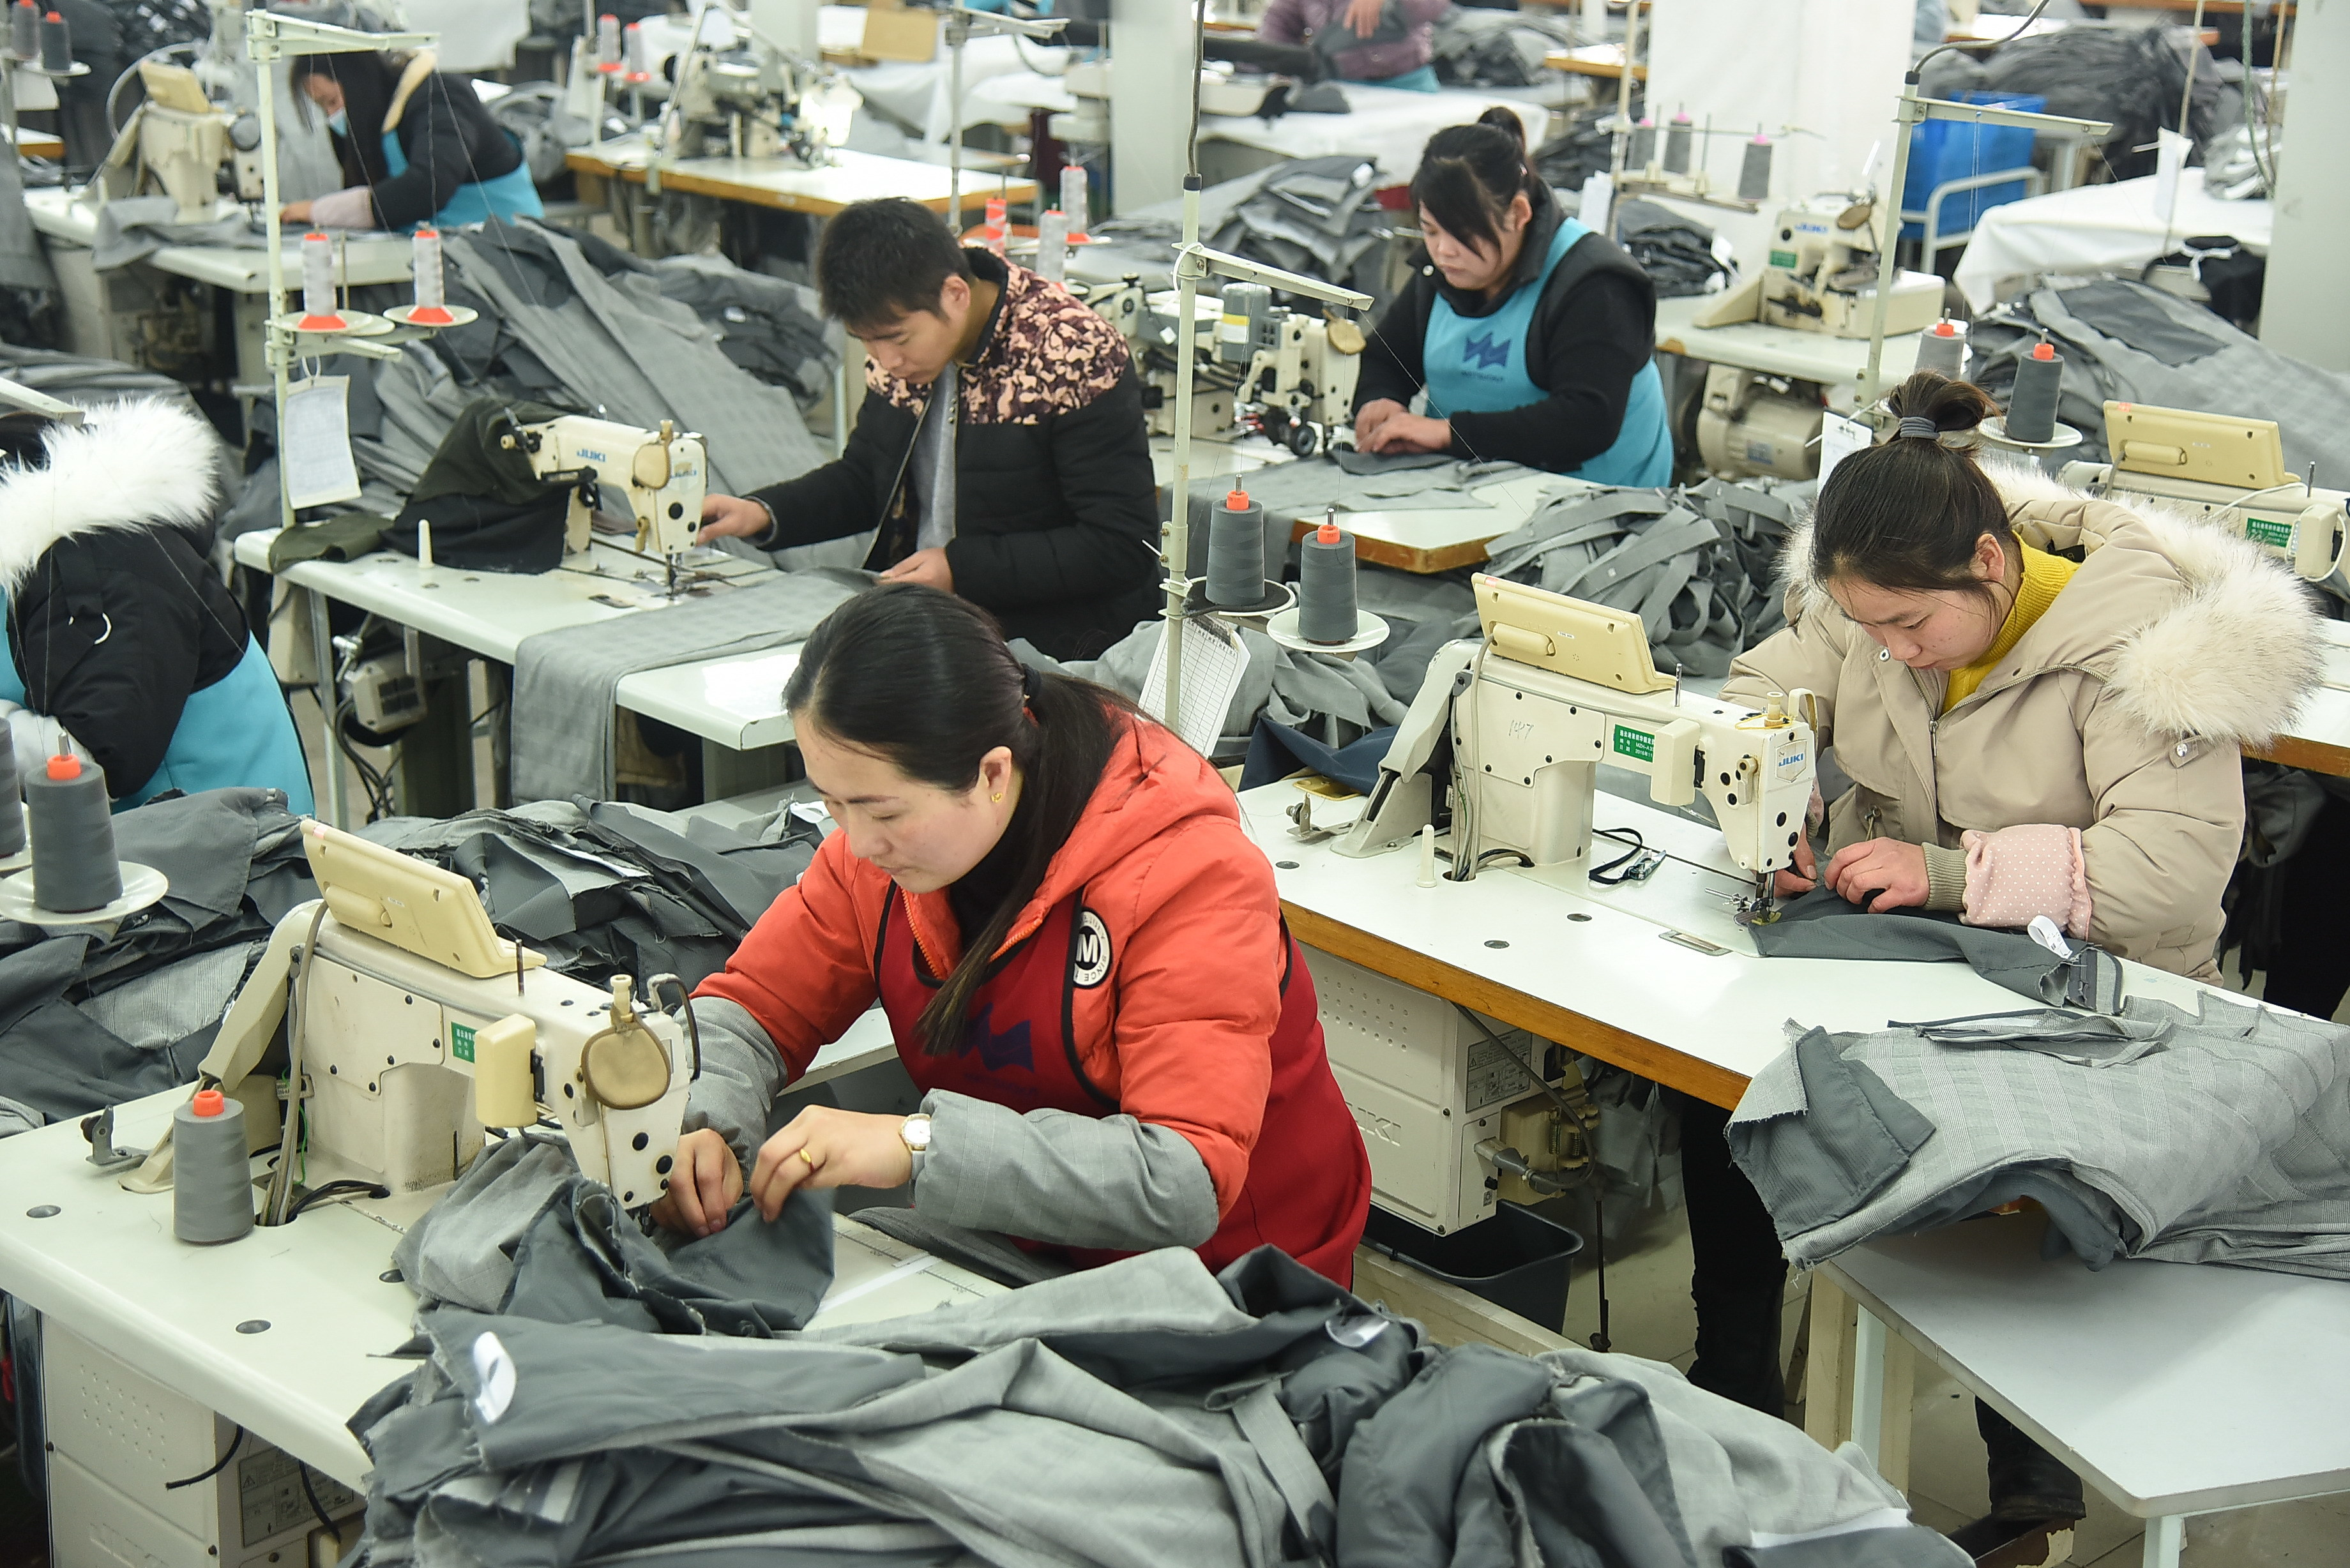 Workers at a clothes manufacturing factory in Lianyungang, Jiangsu ProvinceWorkers at a clothes manufacturing factory, China - 13 Feb 2019